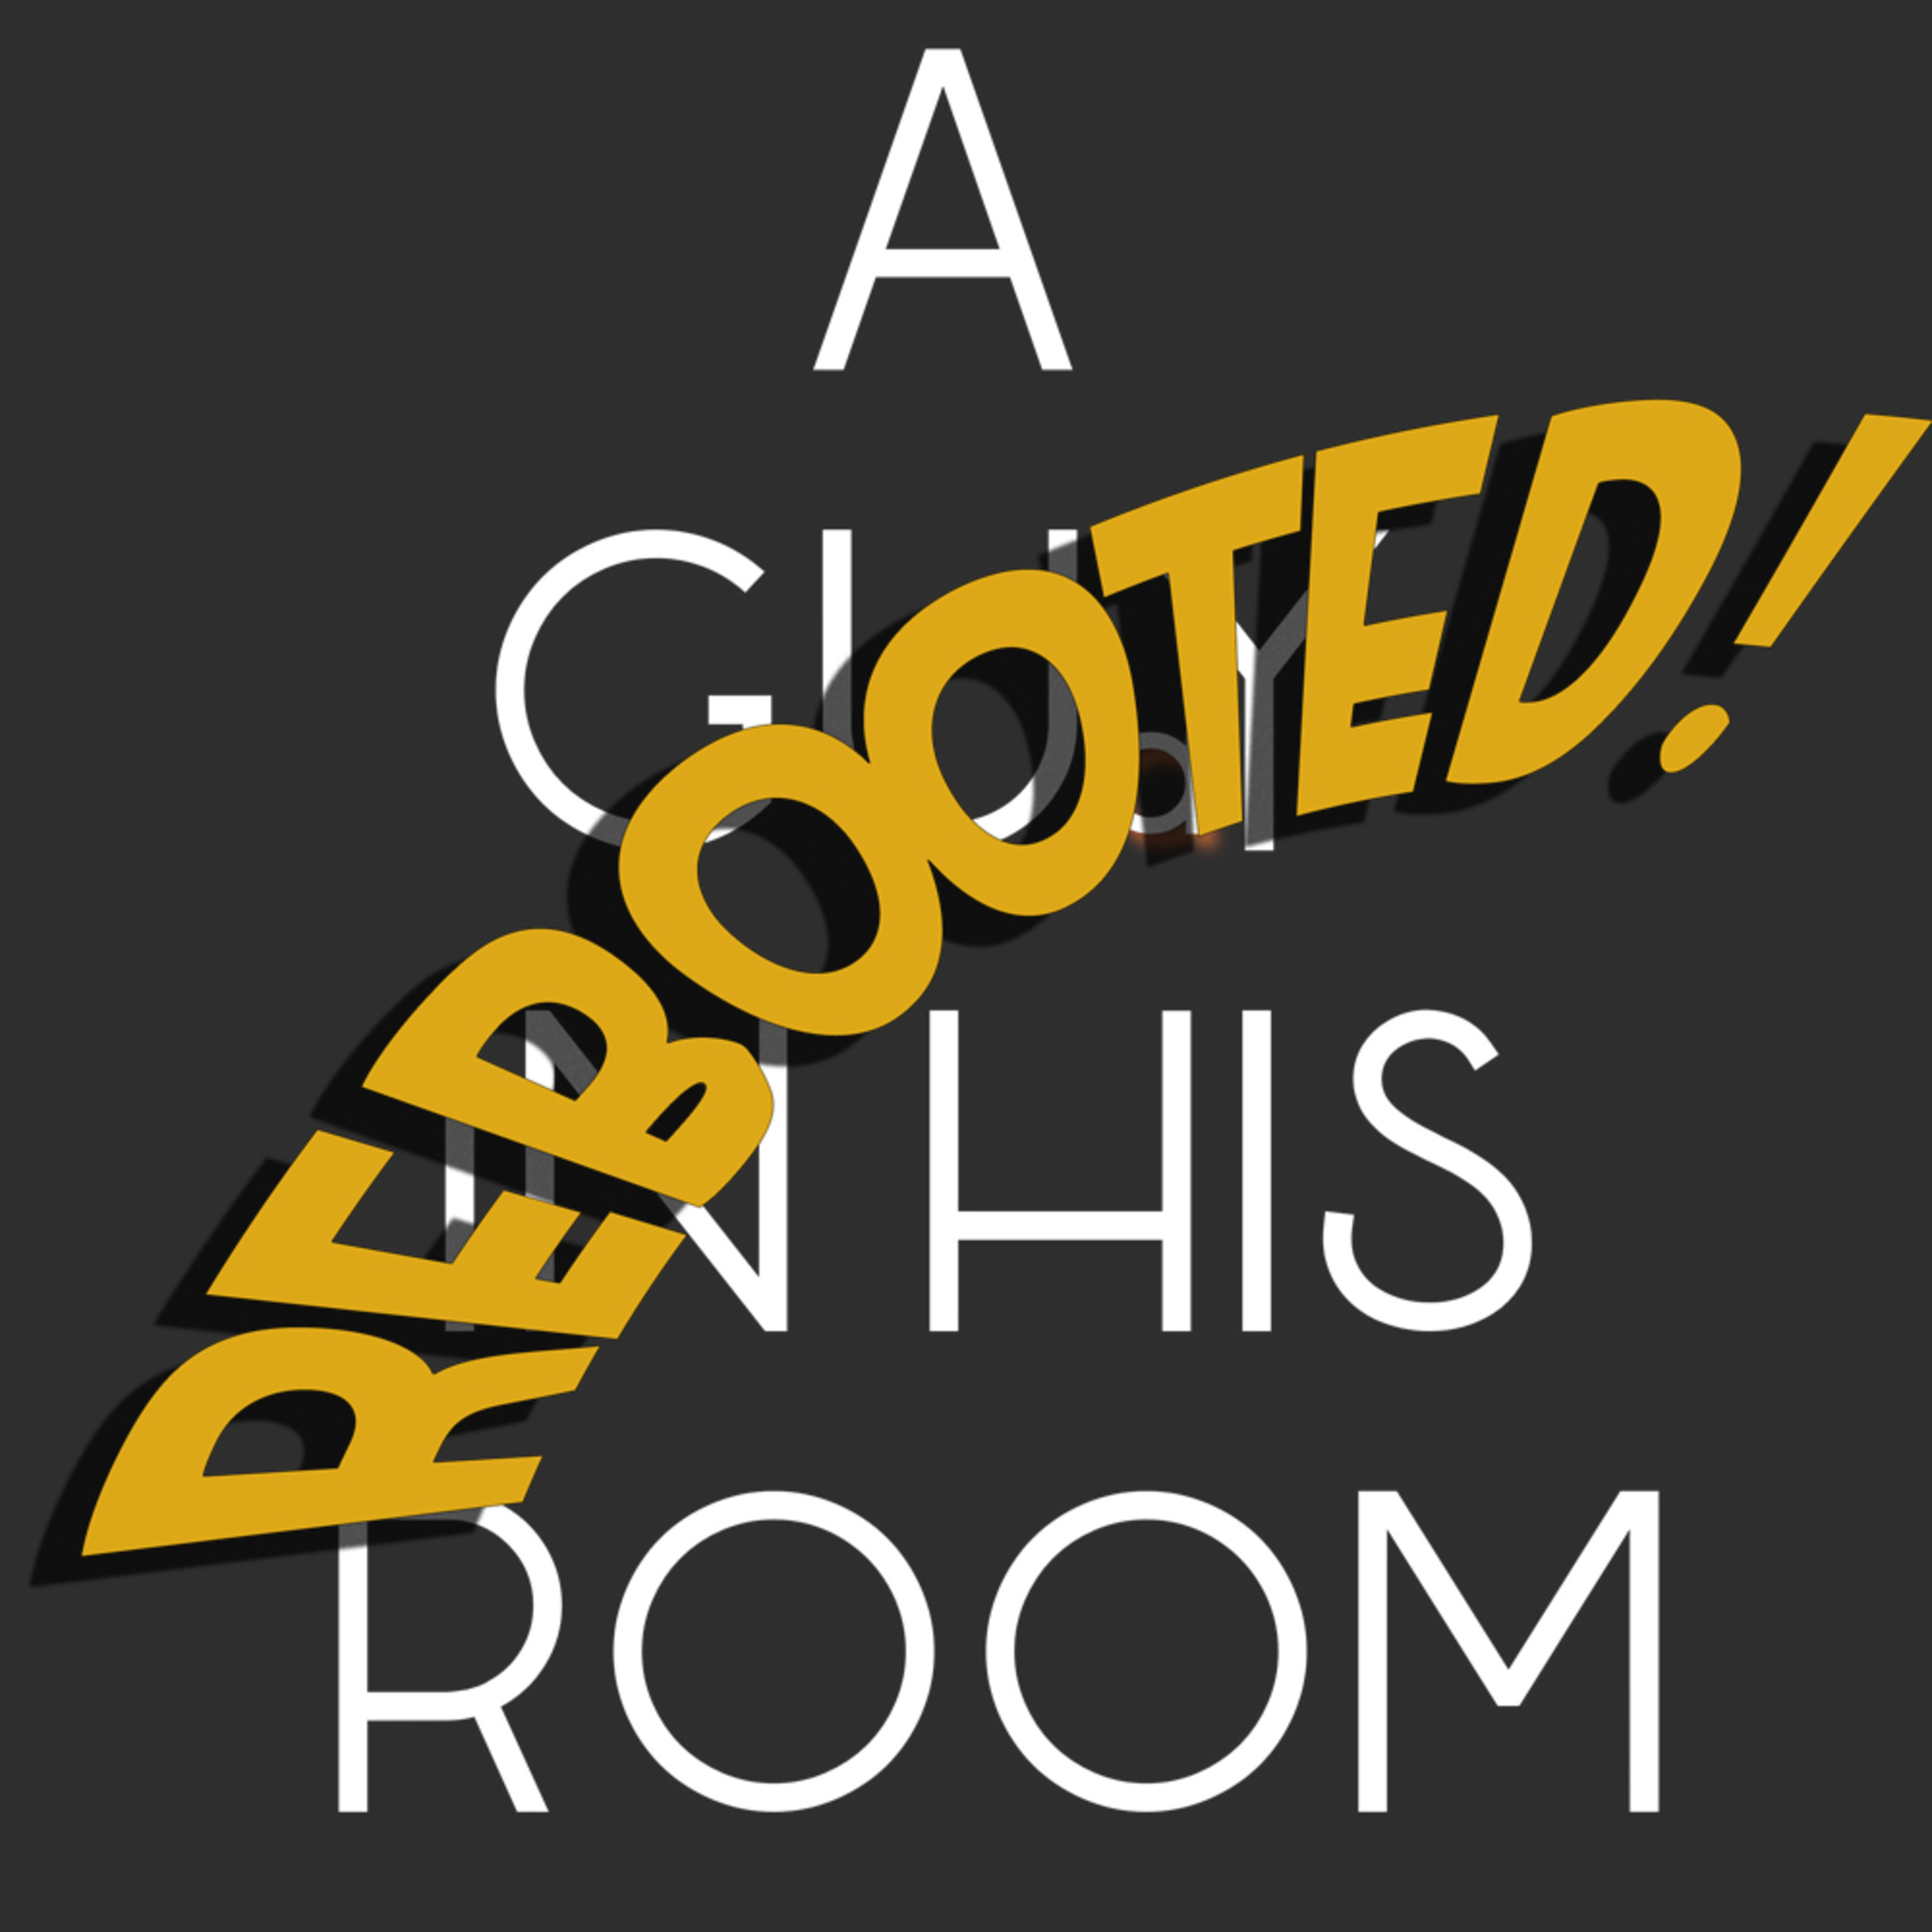 Episode 52: Podcast Reboot! And time to TAKE OUT ROGAN.